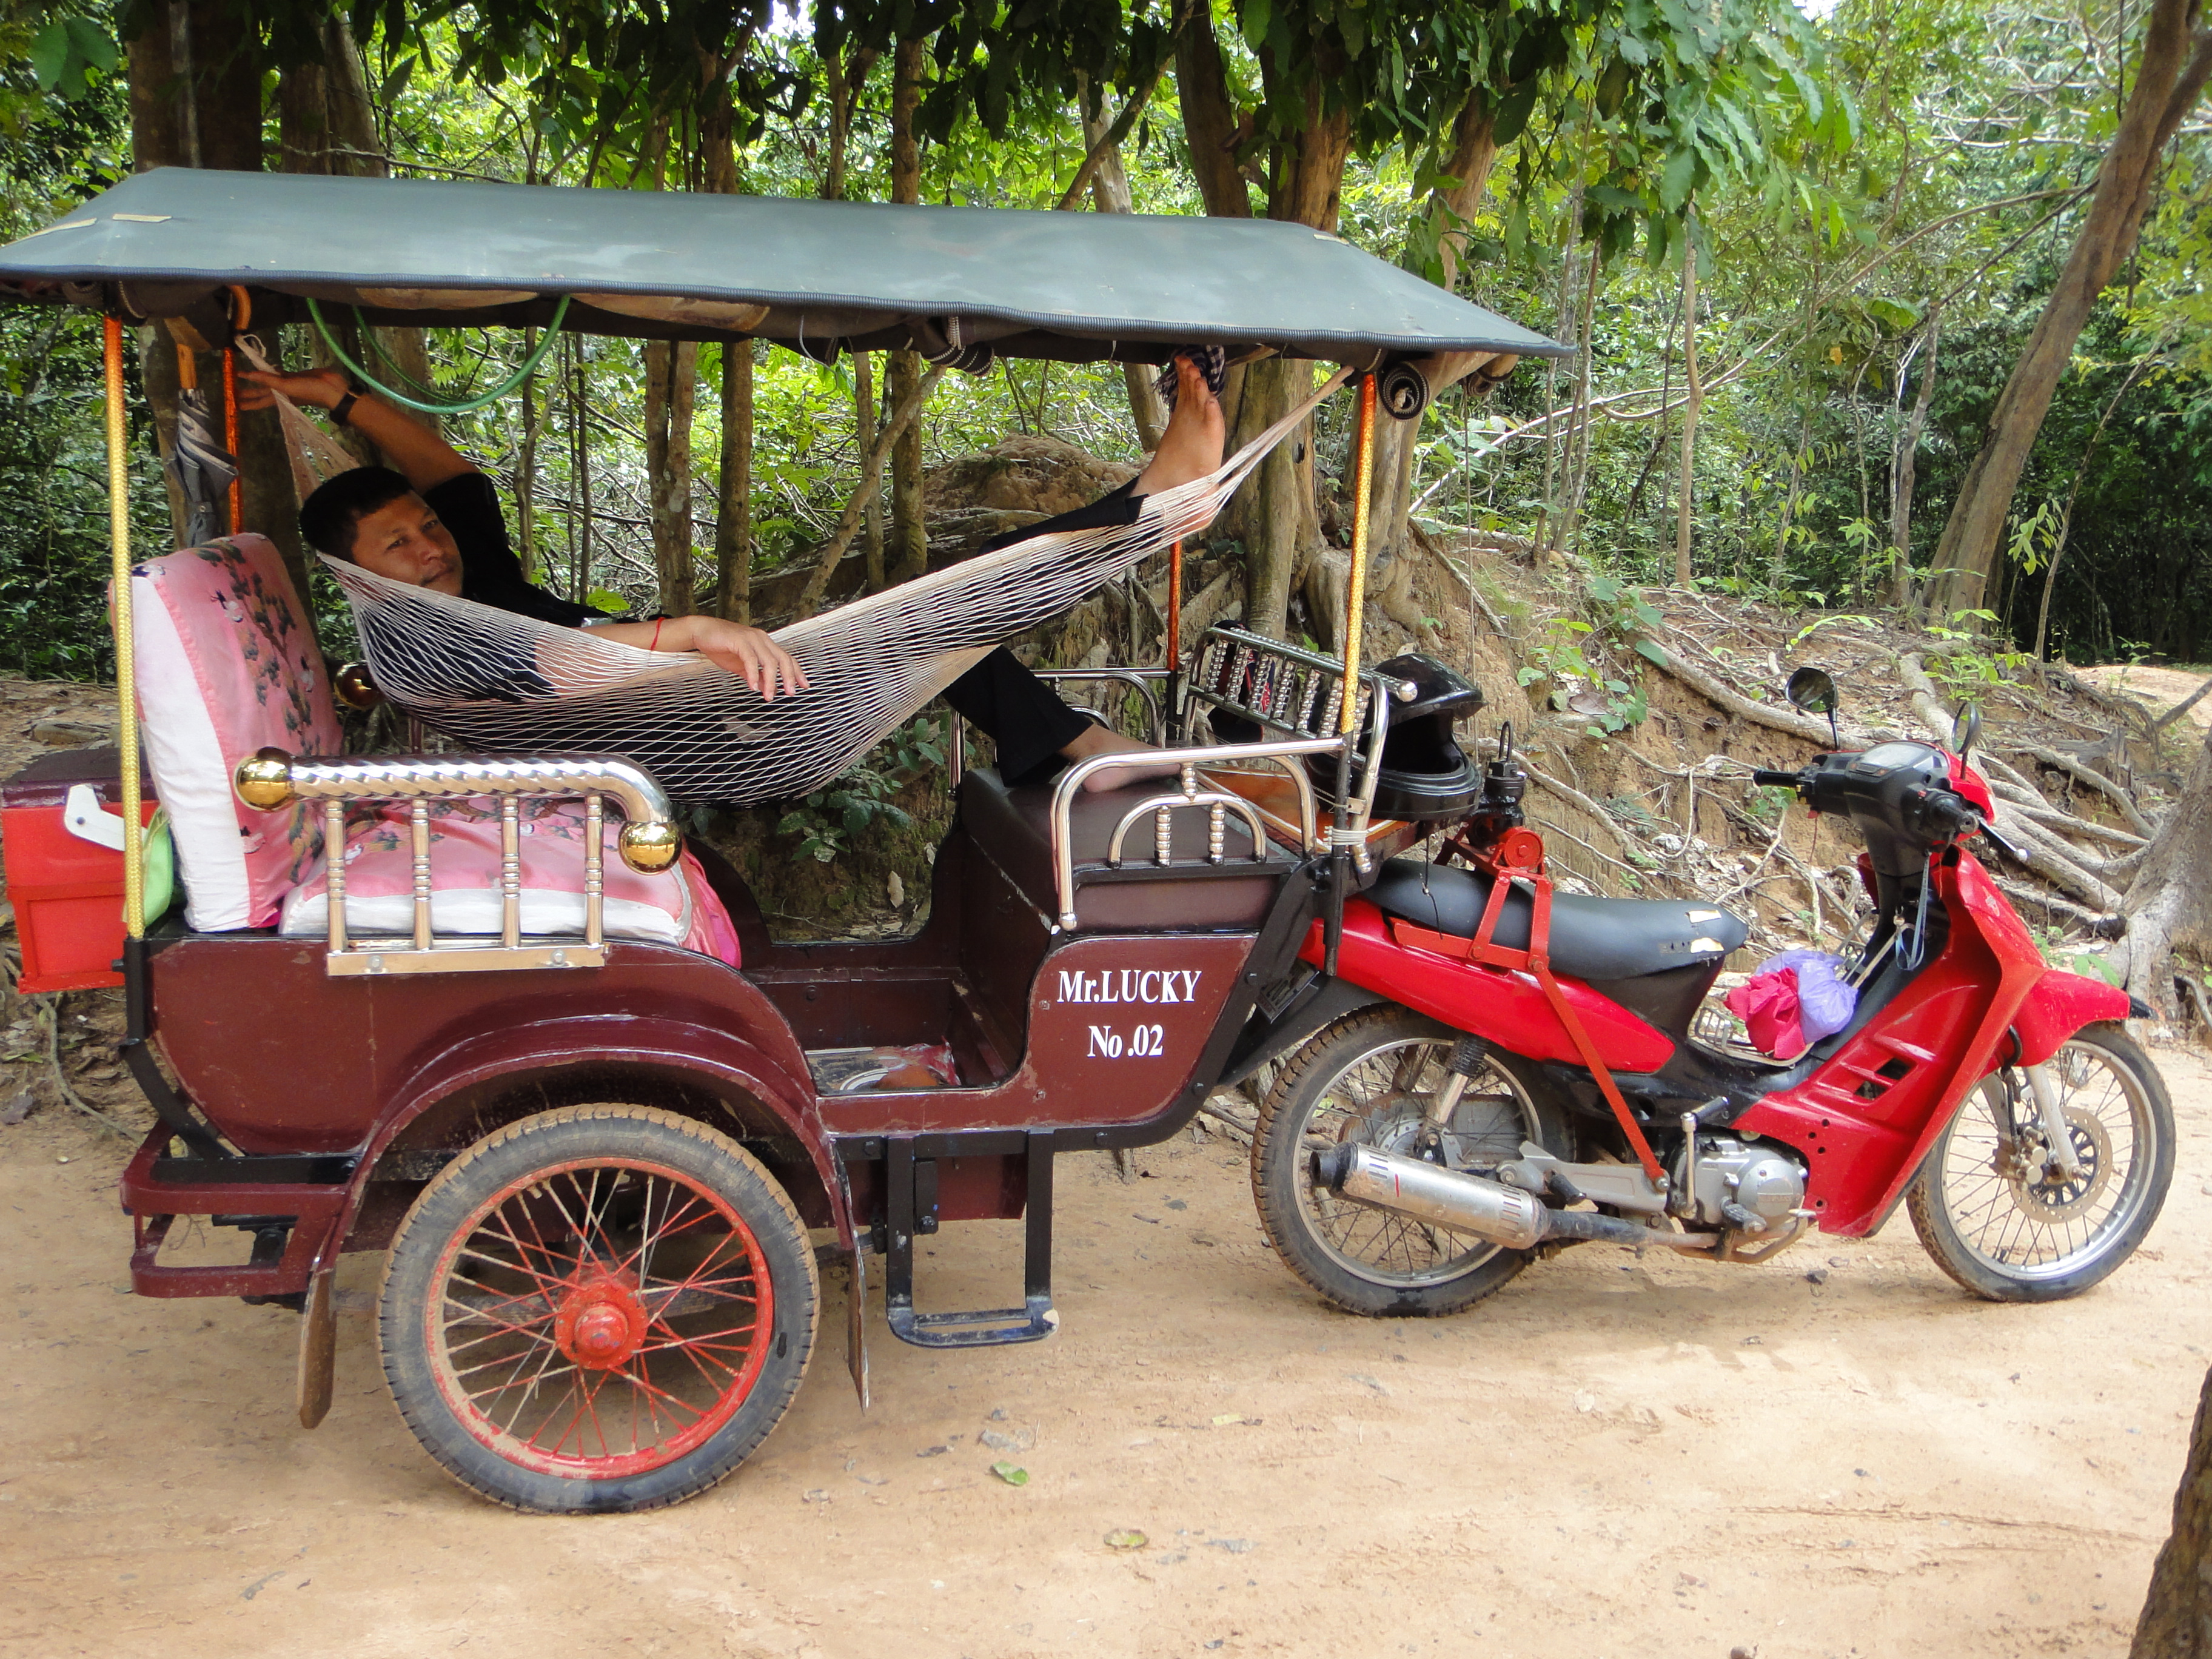 Backpacking in Cambodia: Siem Reap or Sihanoukville?